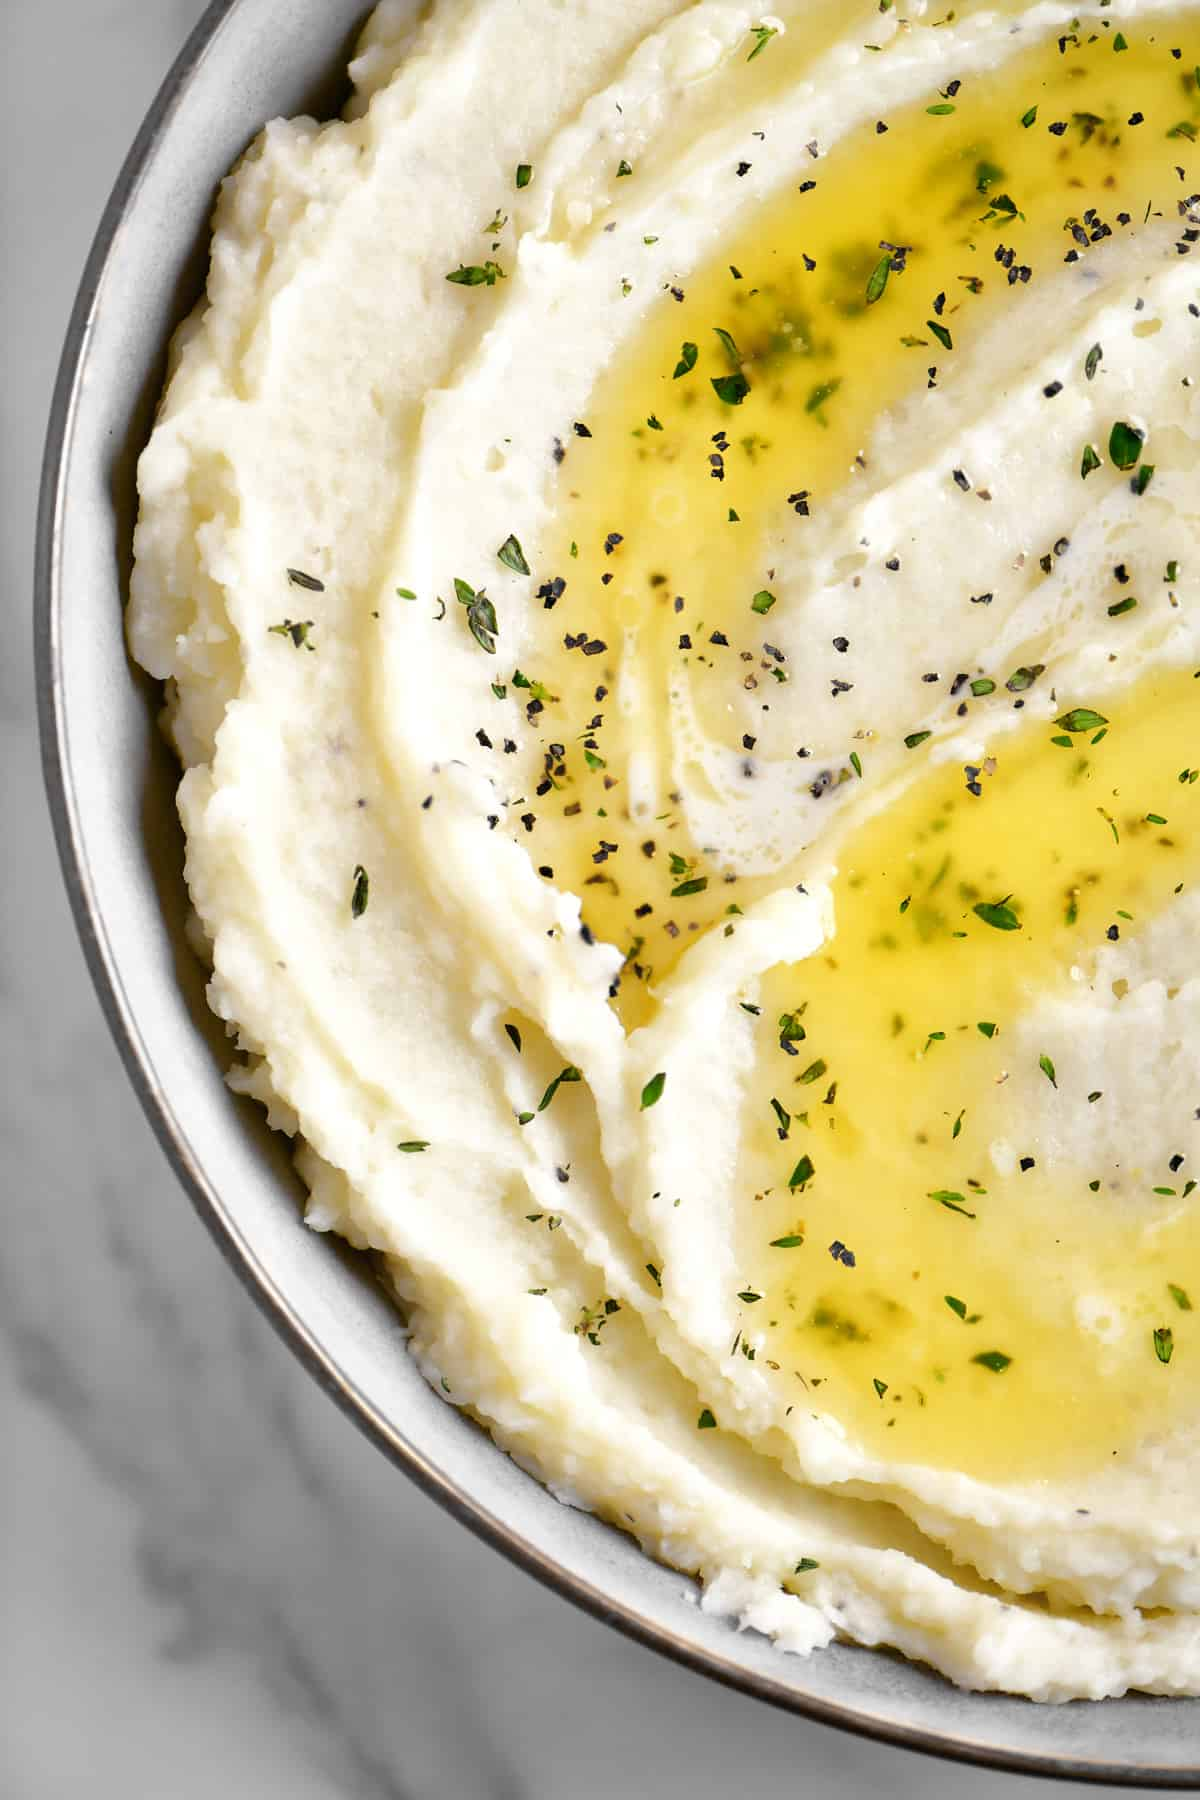 a close-up topdown photo of garlic flavored mashed potatoes in a bowl